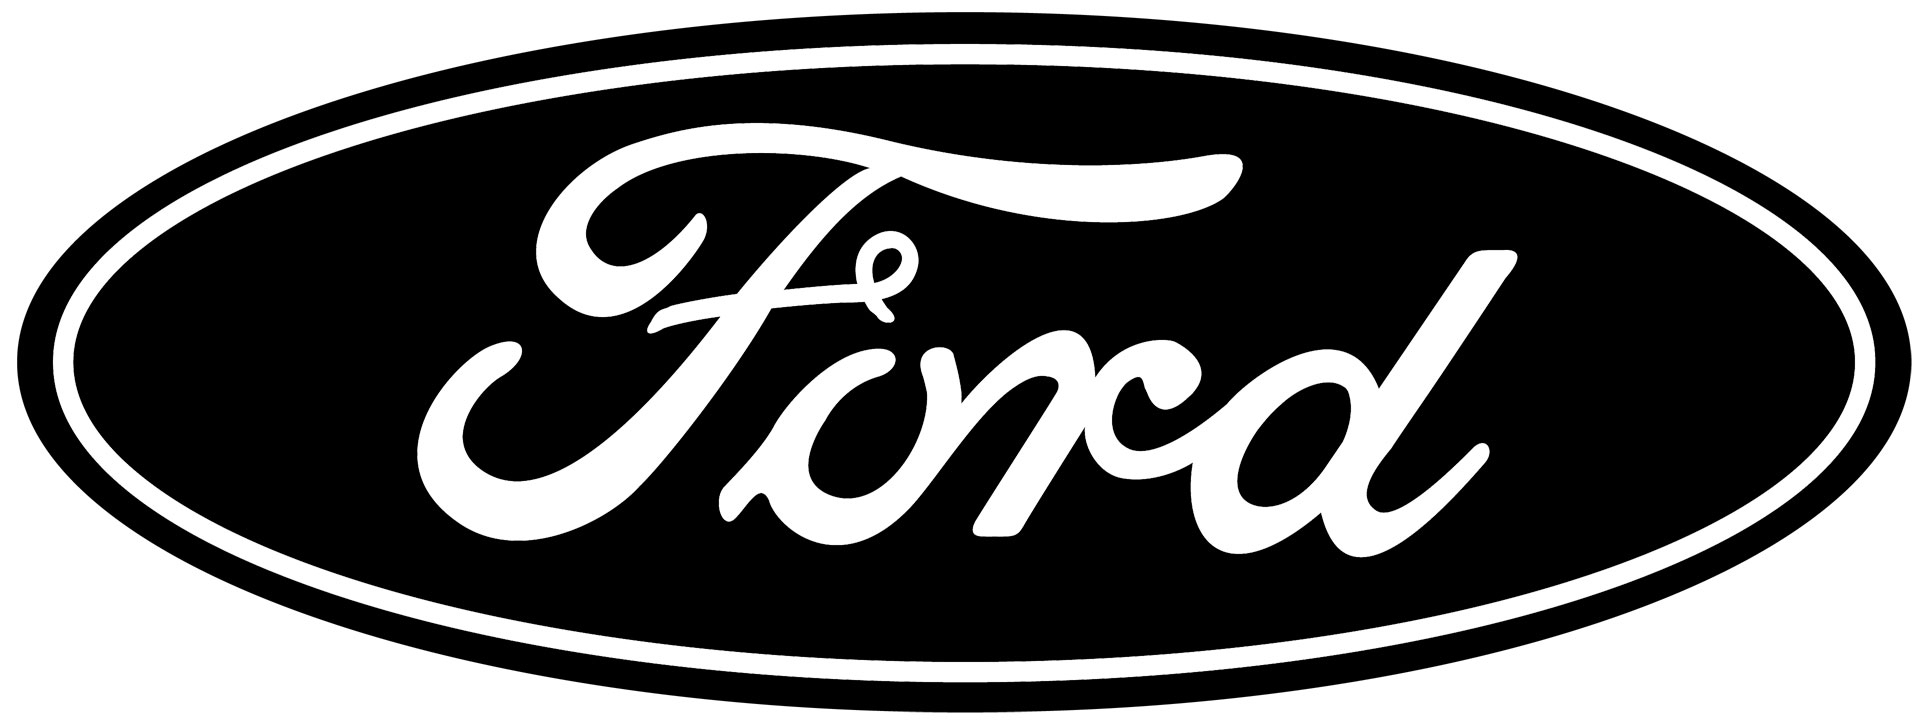 Ford logo clipart svg library library Ford Clipart Group with 79+ items svg library library